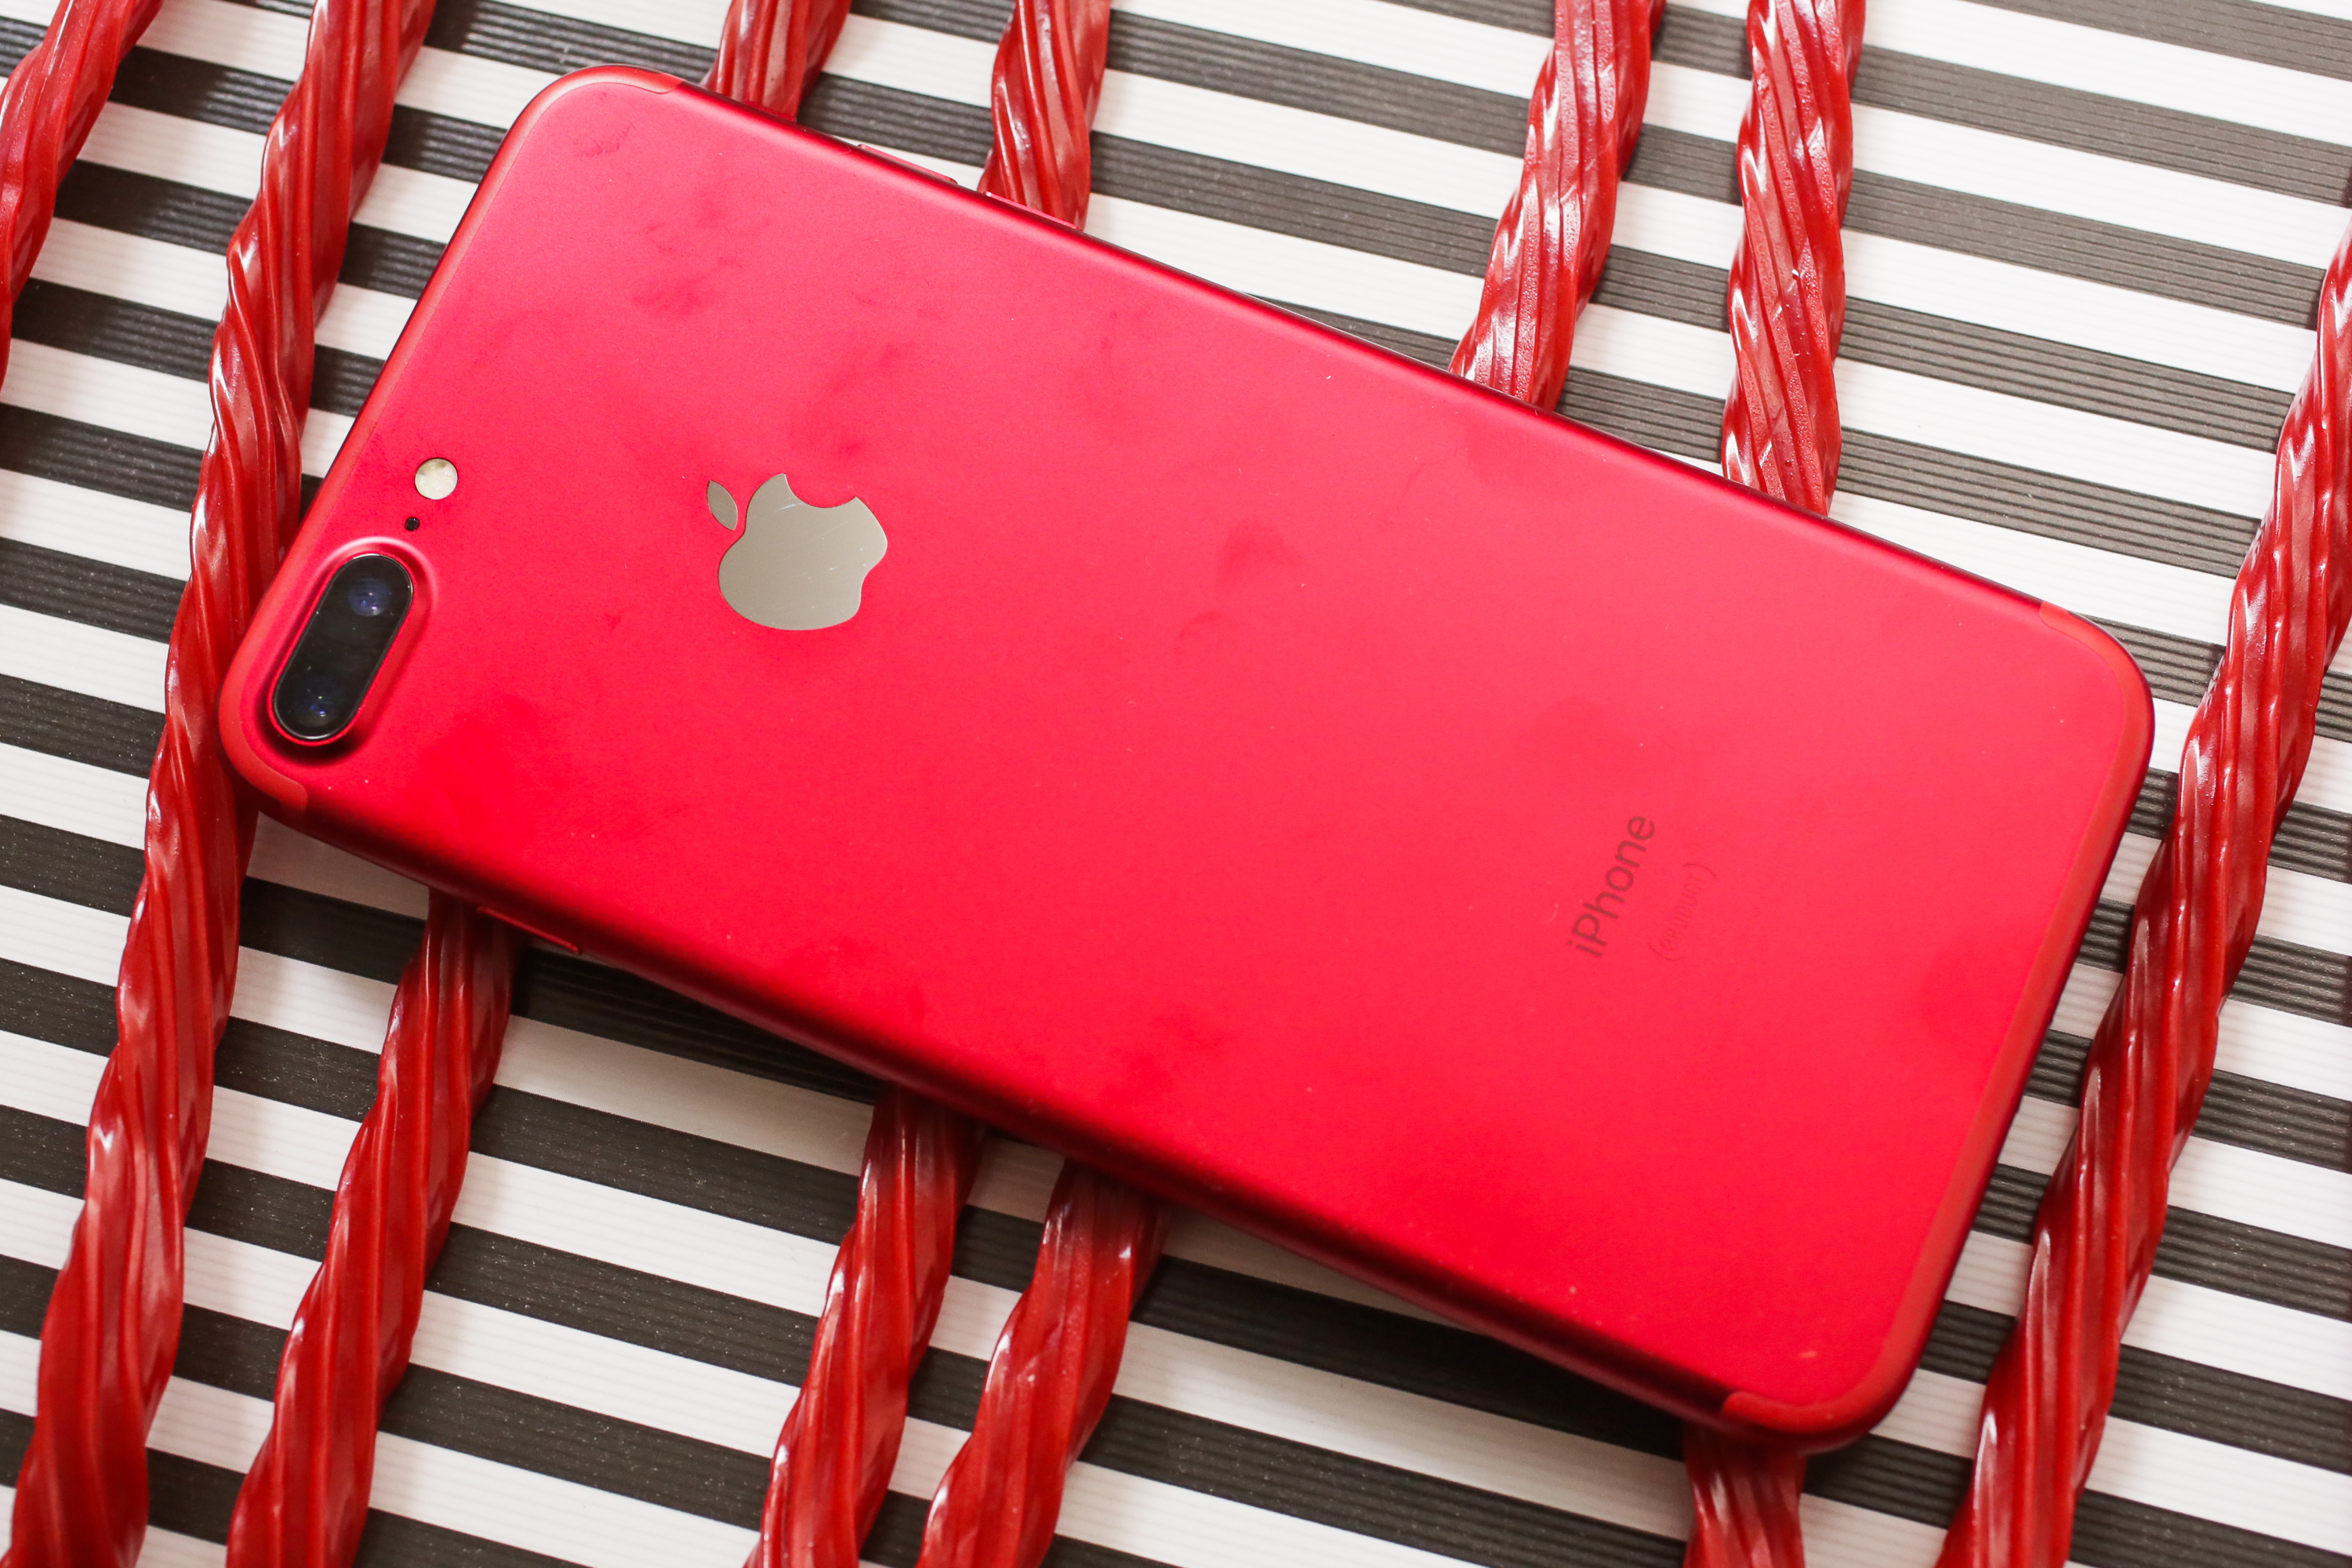 red-iphone-23.jpg